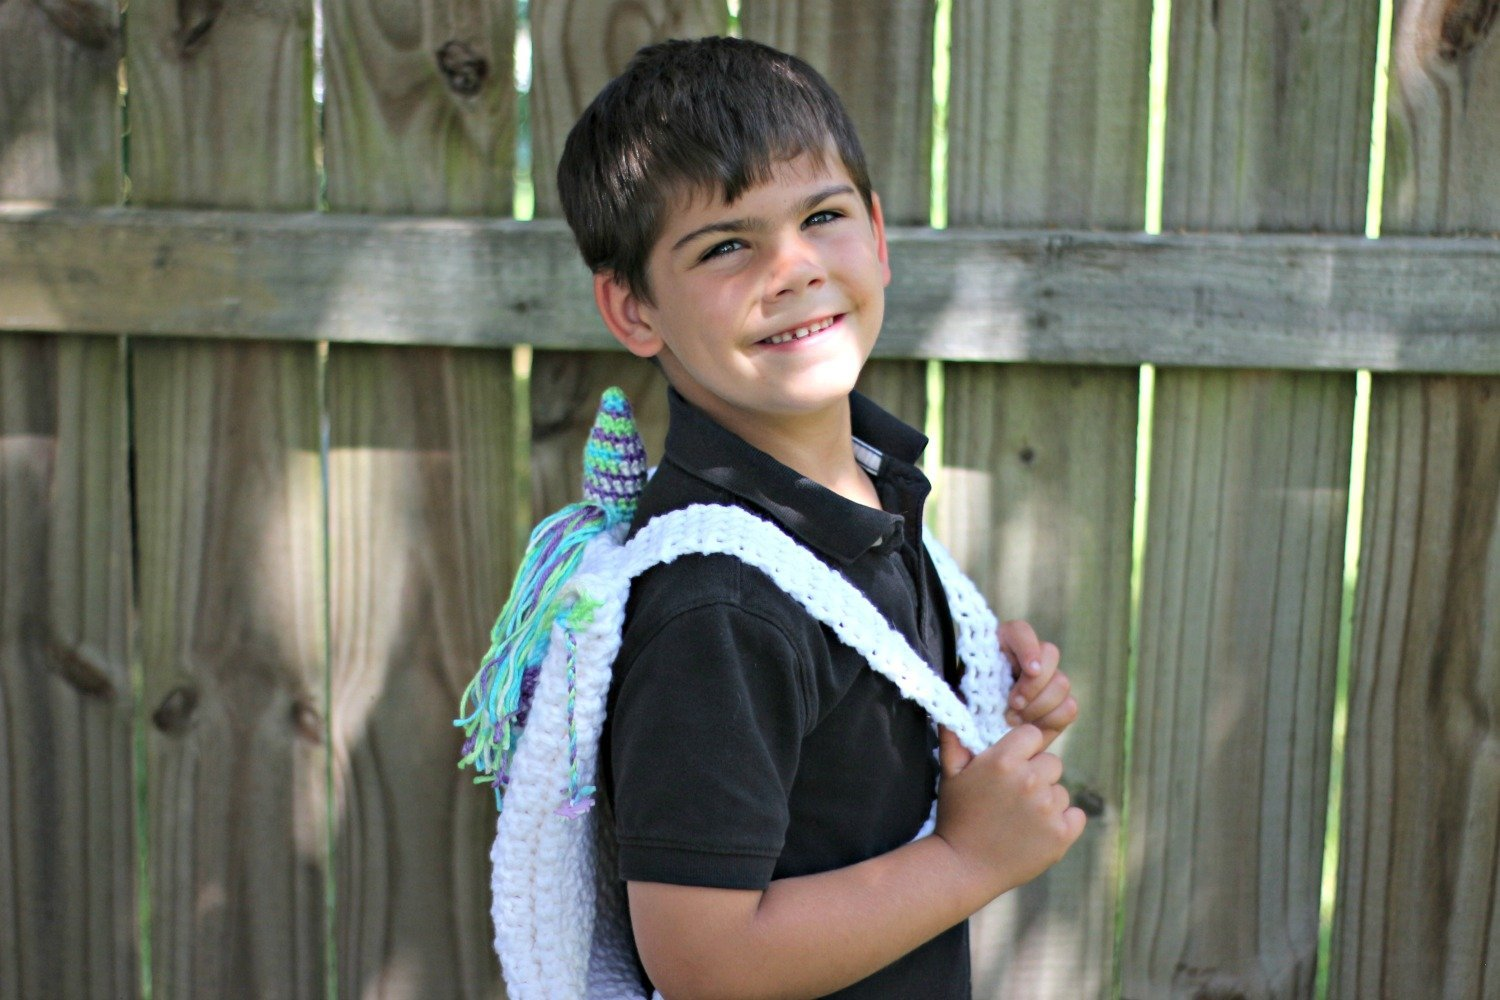 How to crochet an easy unicorn backpack with this free crochet pattern